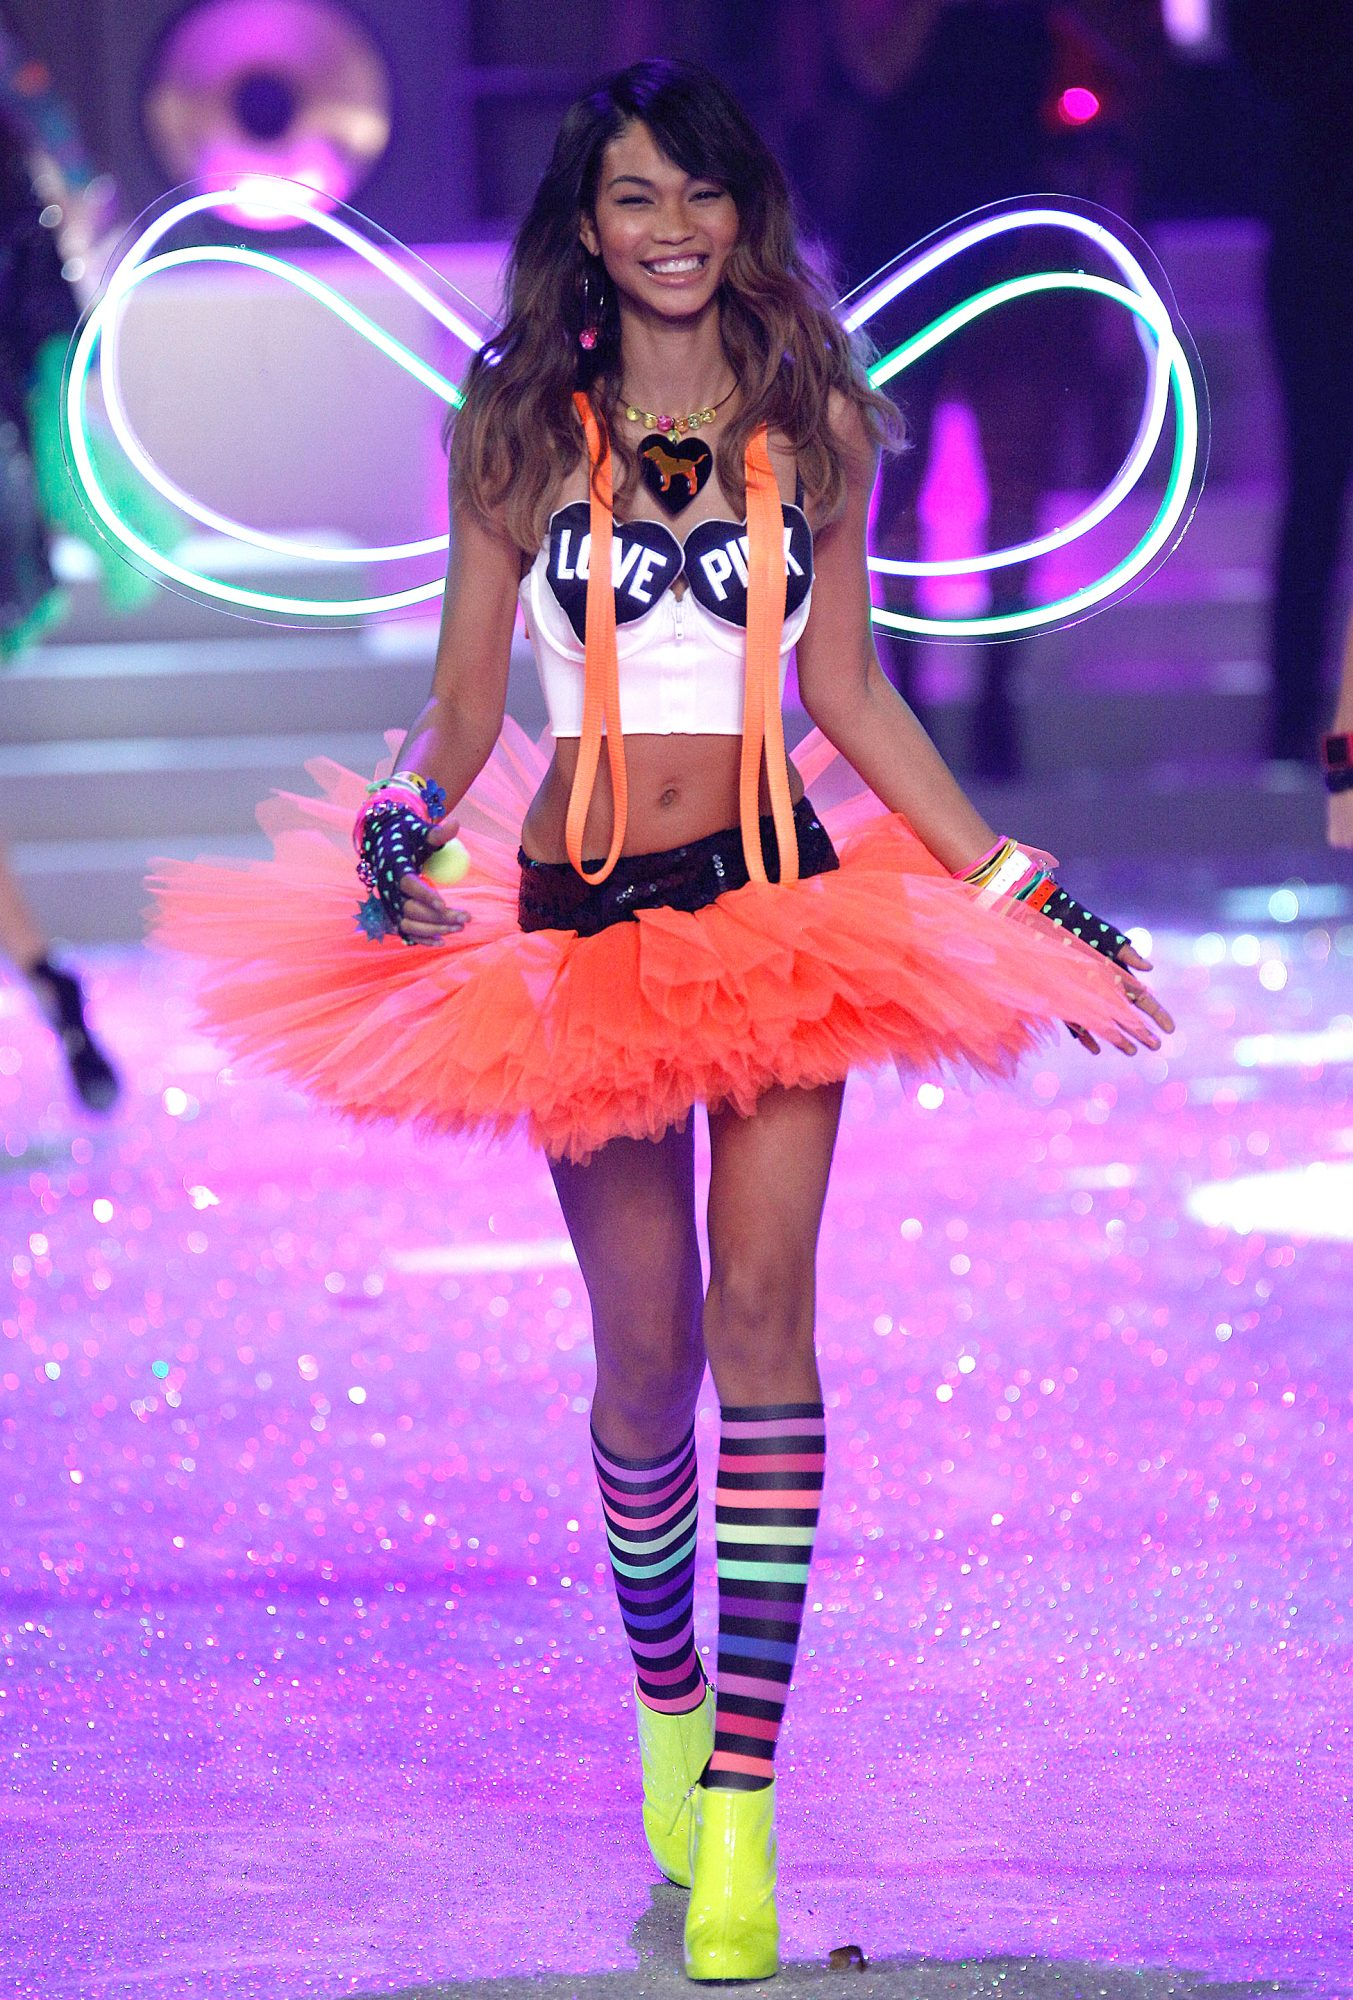 Model Chanel Iman walks the runway during the 2011 Victoria's Secret Fashion Show